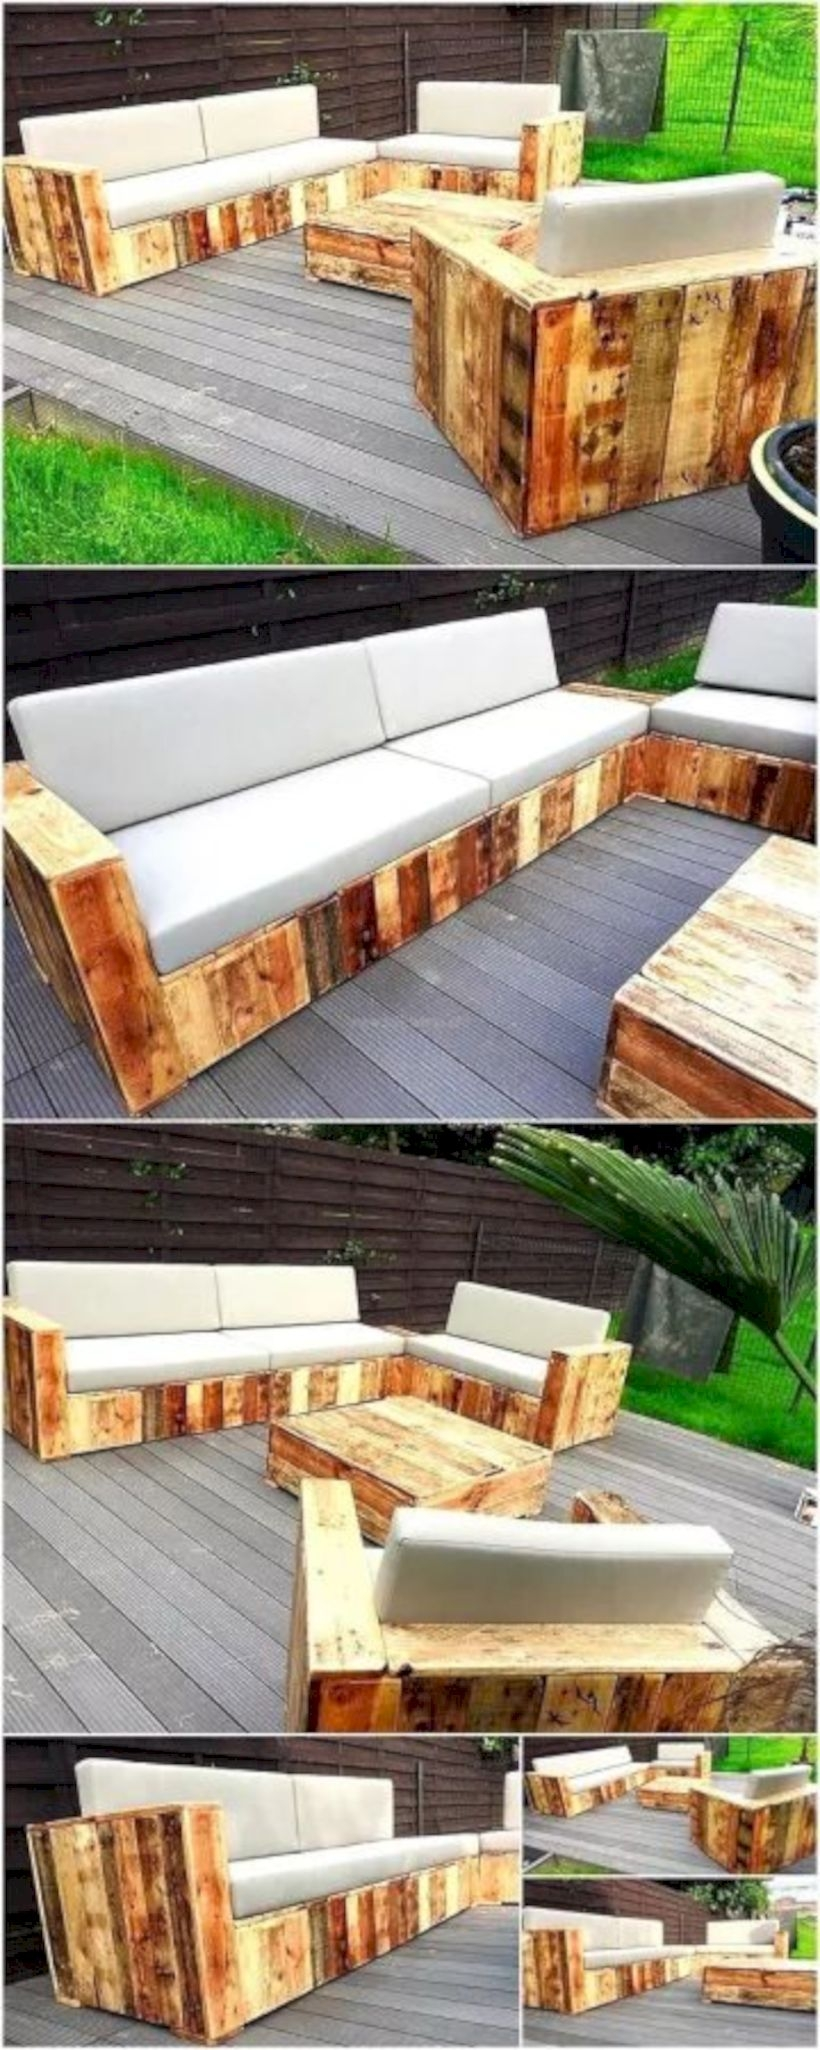 Wood pallet furniture for patio